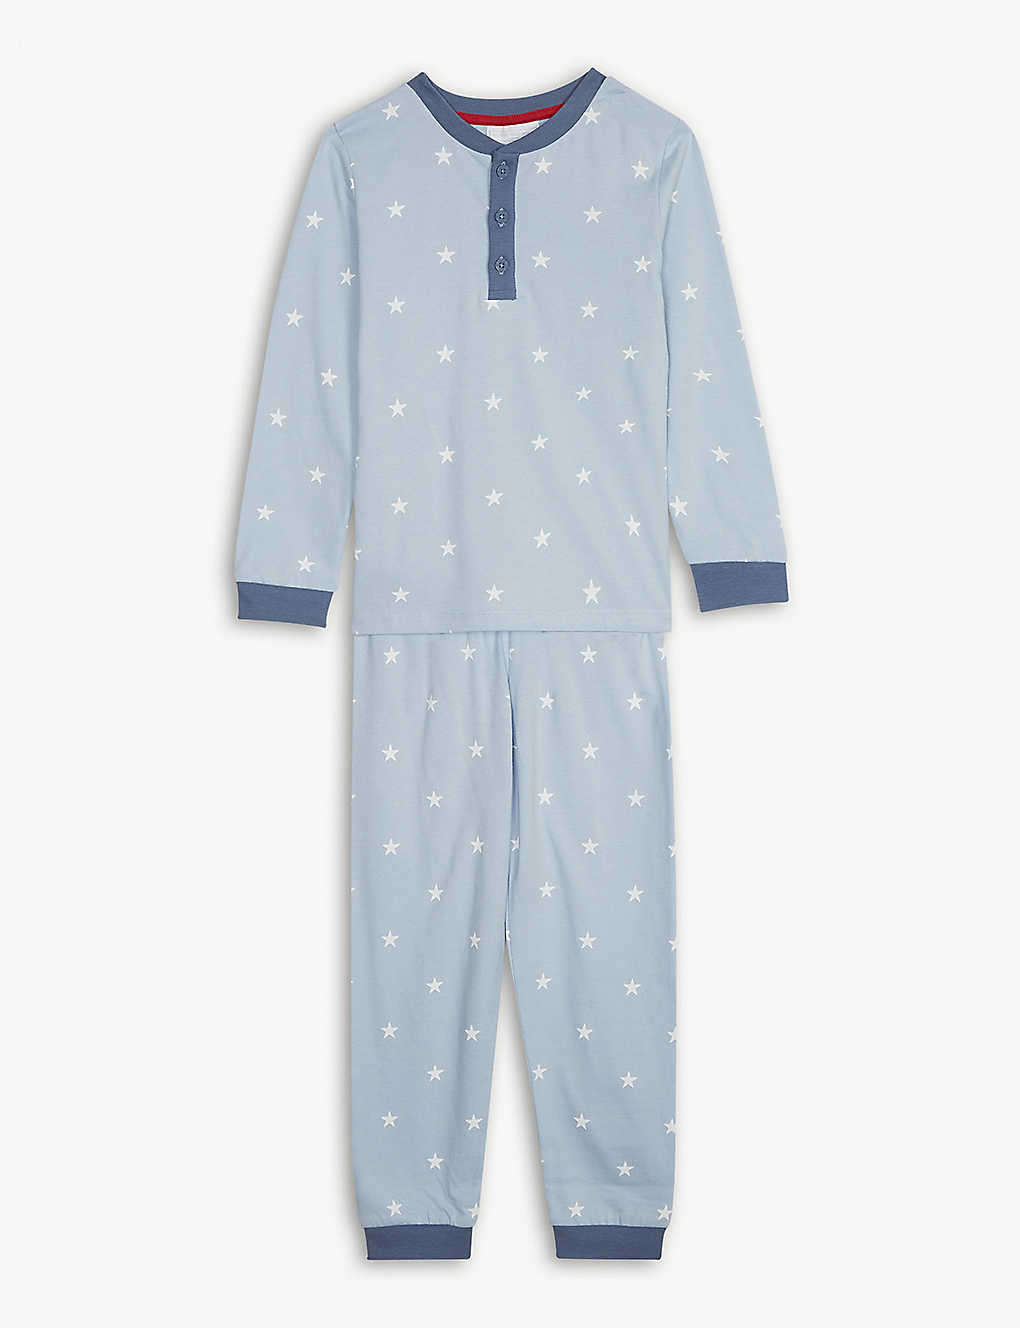 75966e98cced4 THE LITTLE WHITE COMPANY - Star-print cotton pyjamas 1-6 years ...